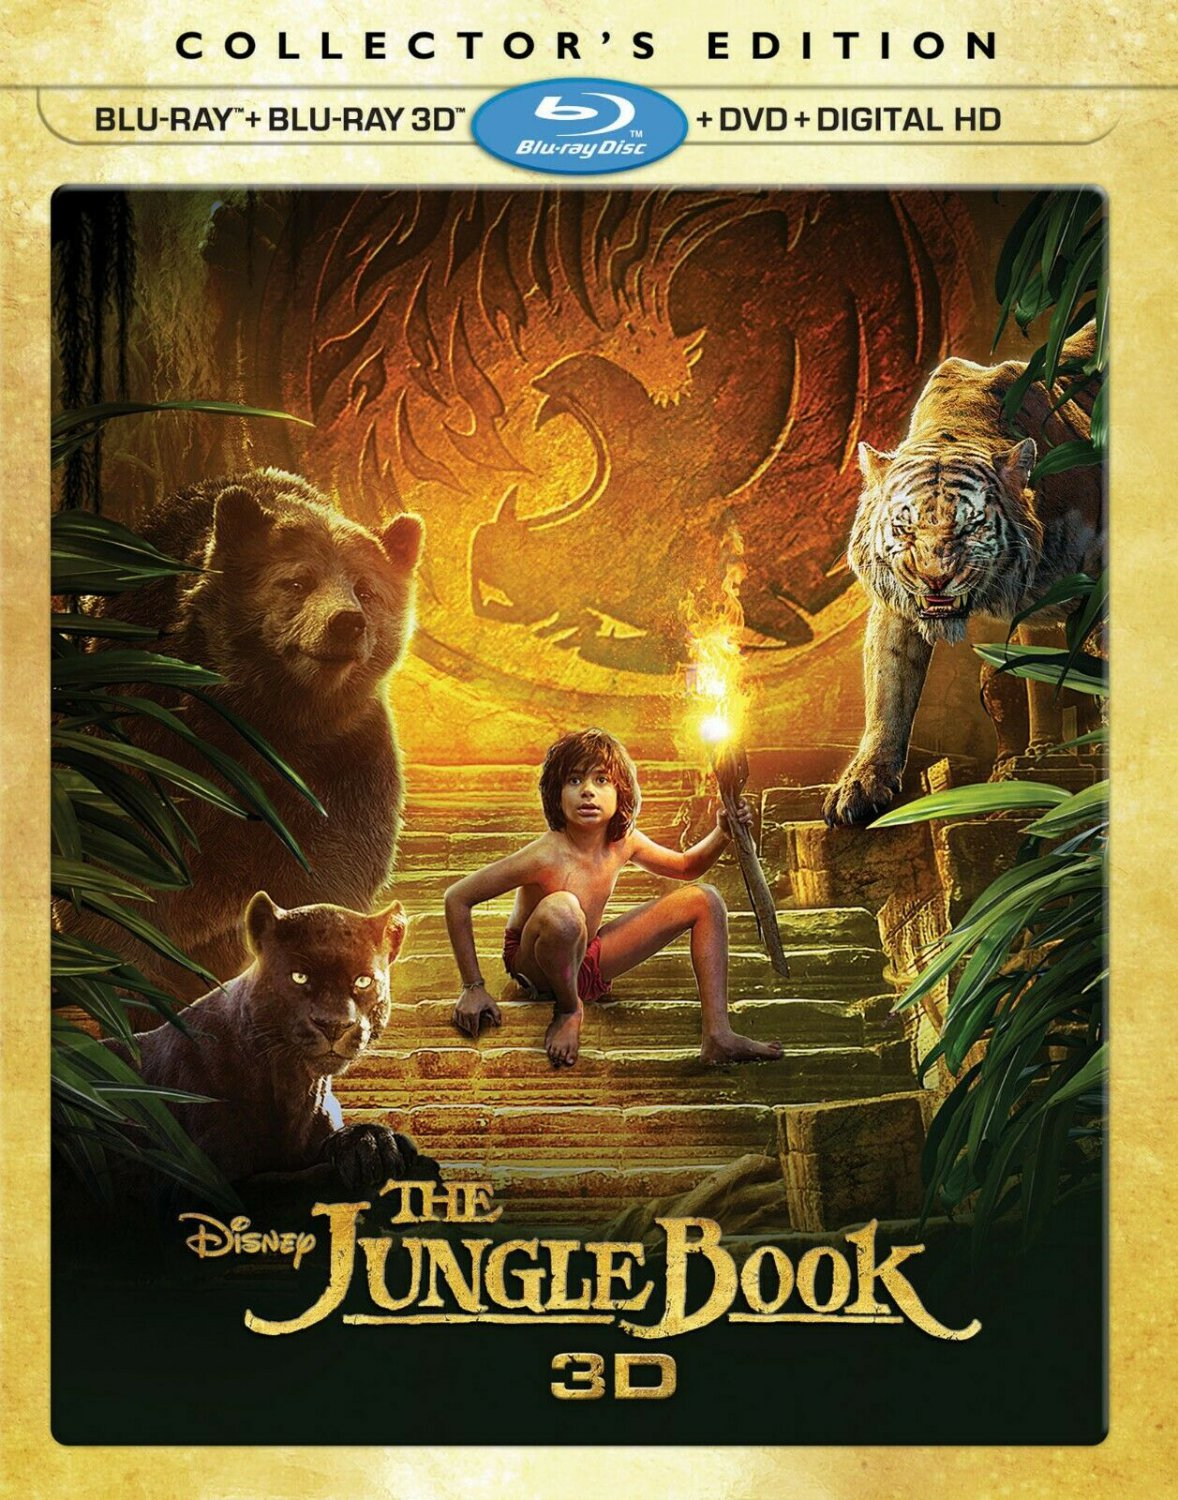 The Jungle Book (3D Blu-ray/Blu-ray/DVD/Digital HD) Collector�s Edition + Slipcover